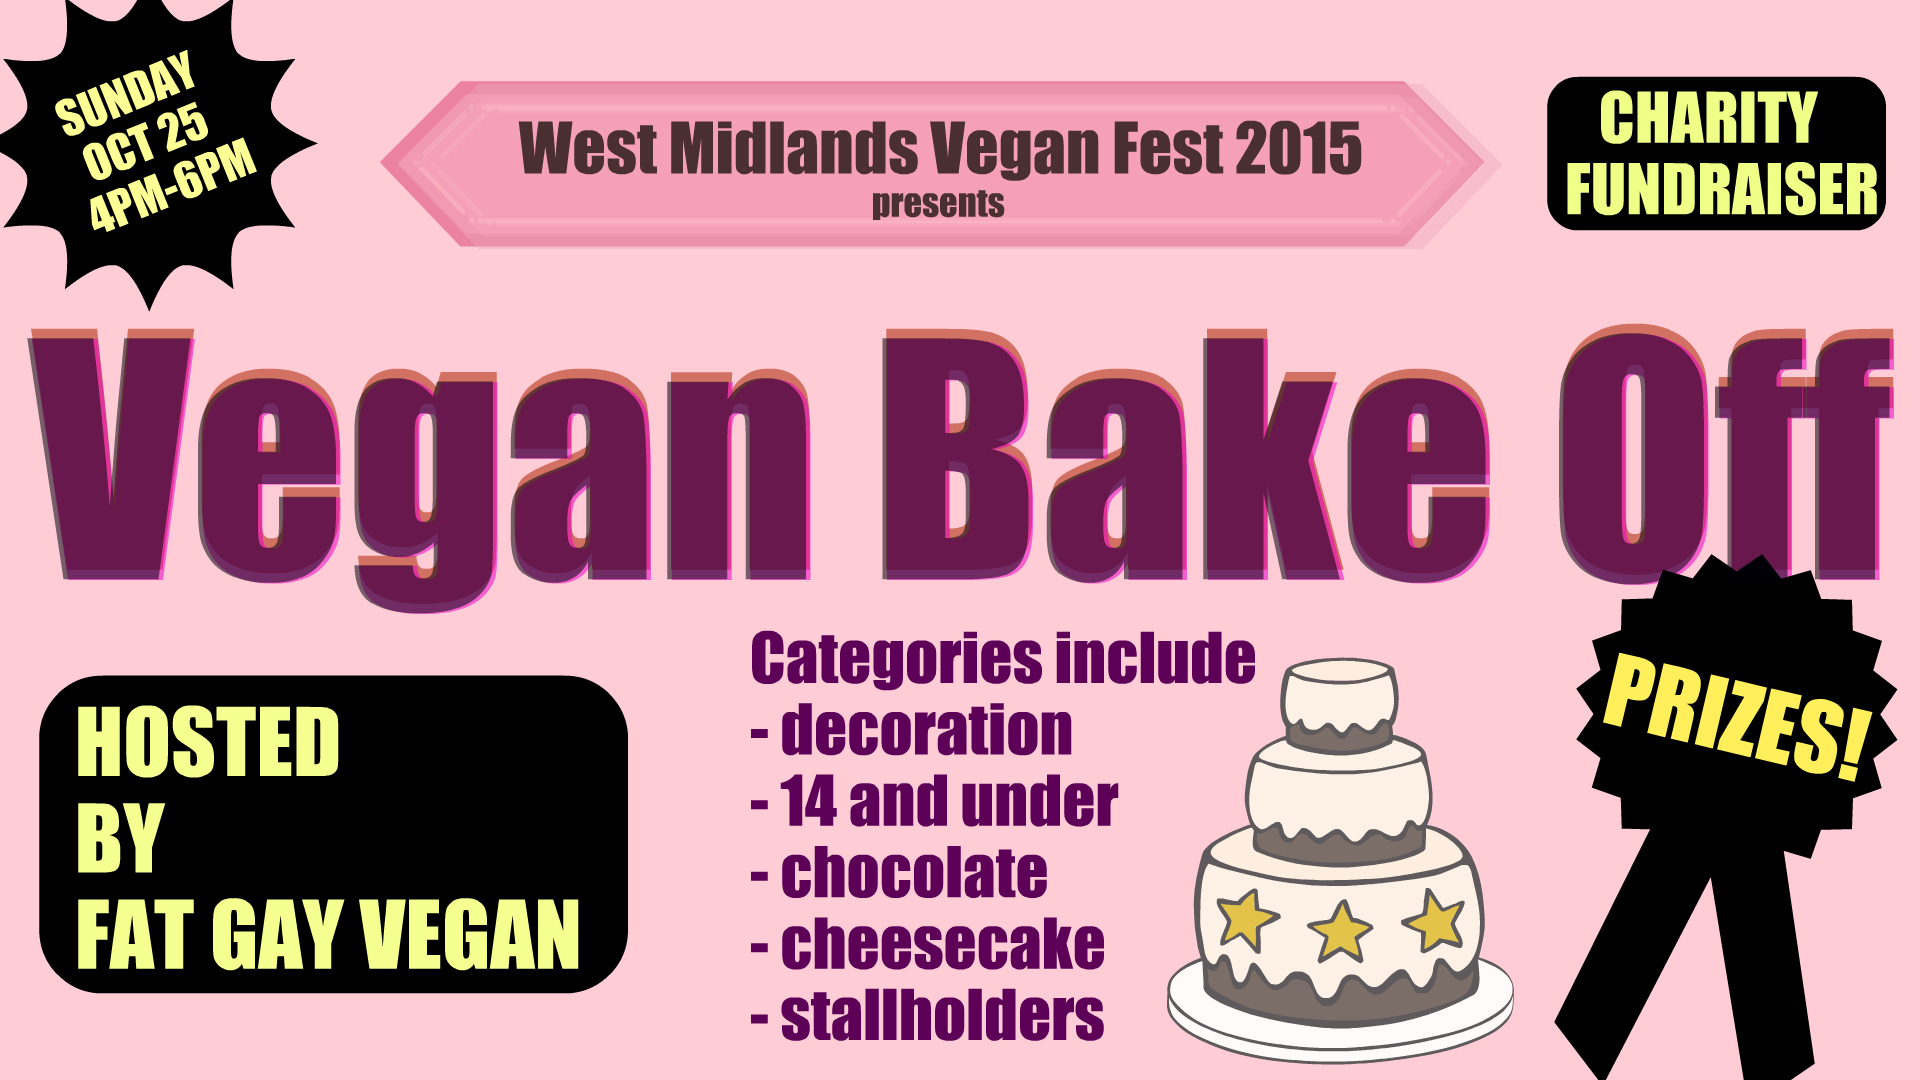 https://i2.wp.com/fatgayvegan.com/wp-content/uploads/2015/09/bake-off-2015.jpg?fit=1920%2C1080